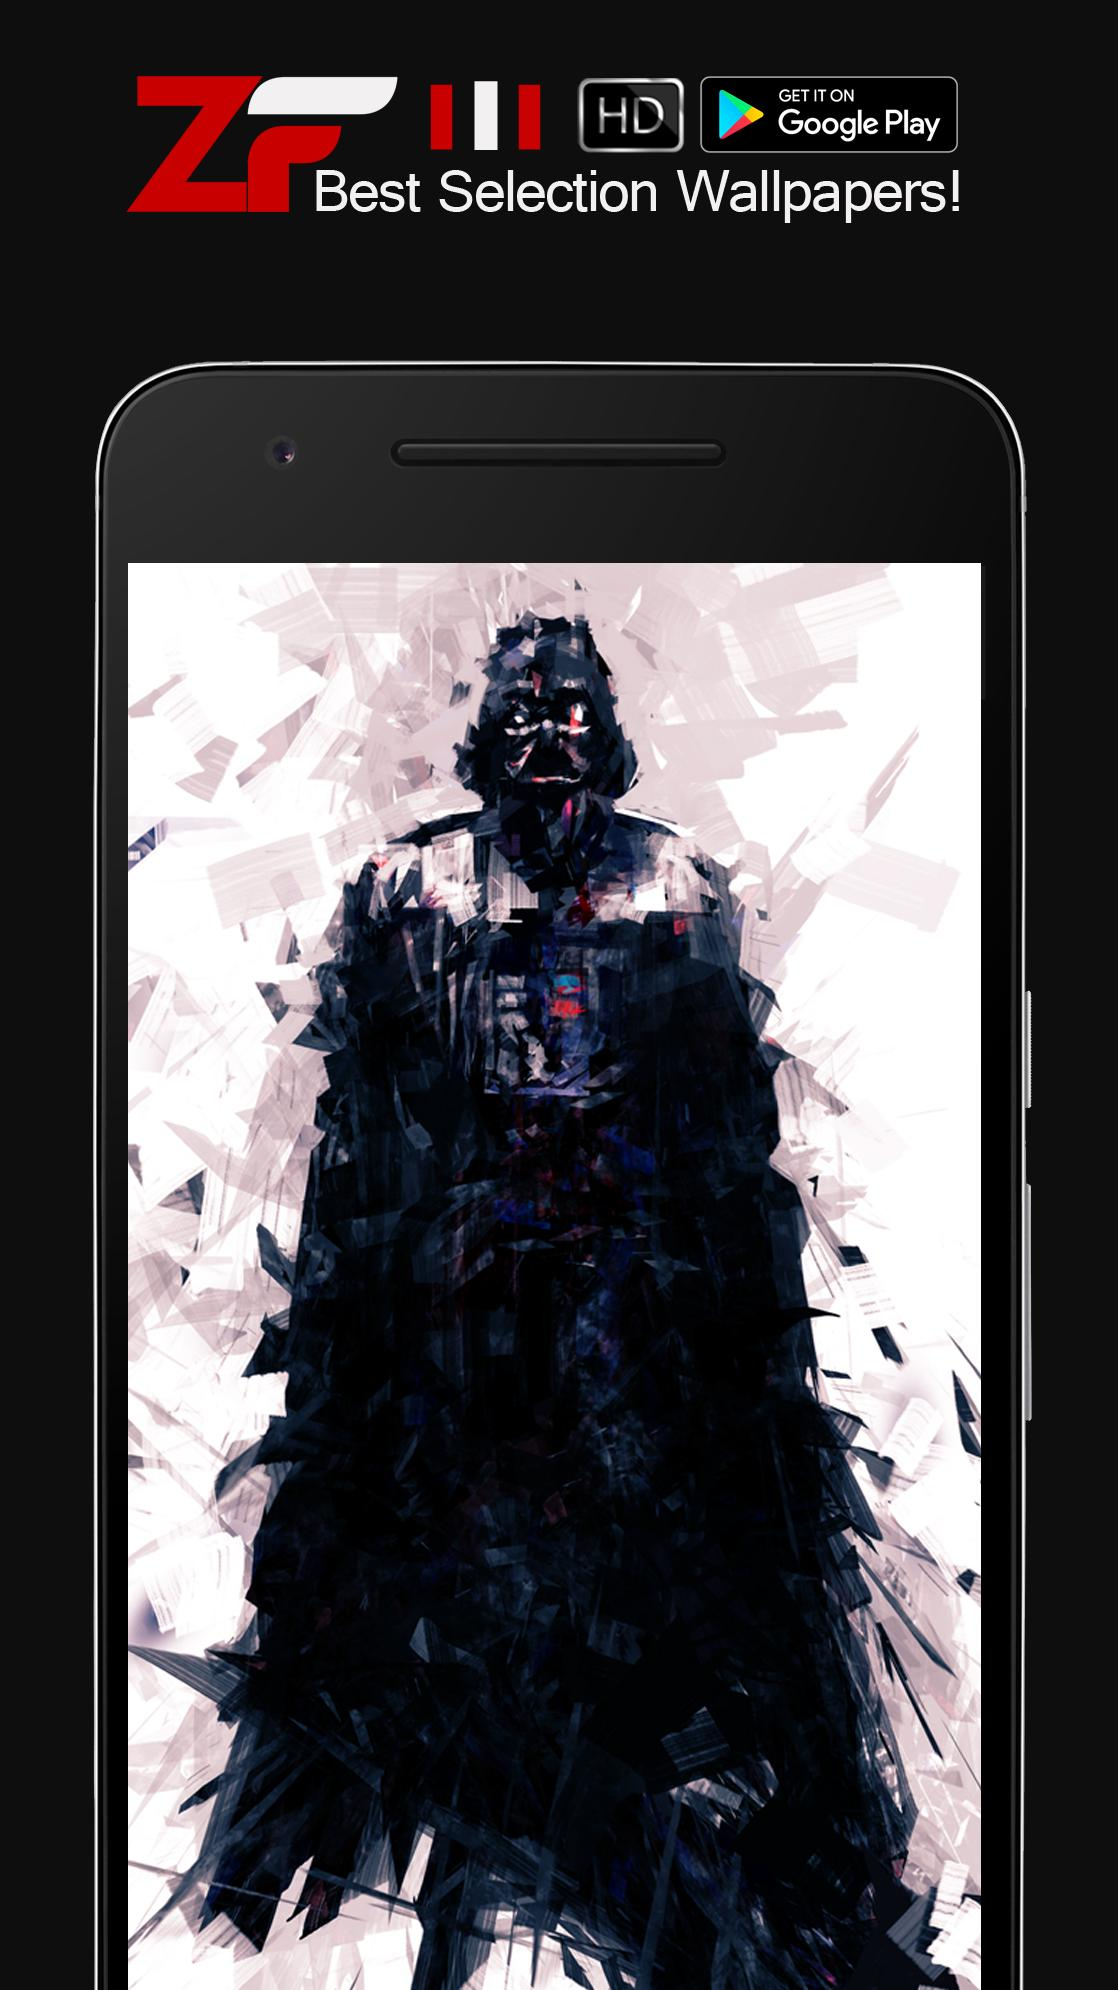 Darth Vader Wallpapers Zhafir For Android Apk Download